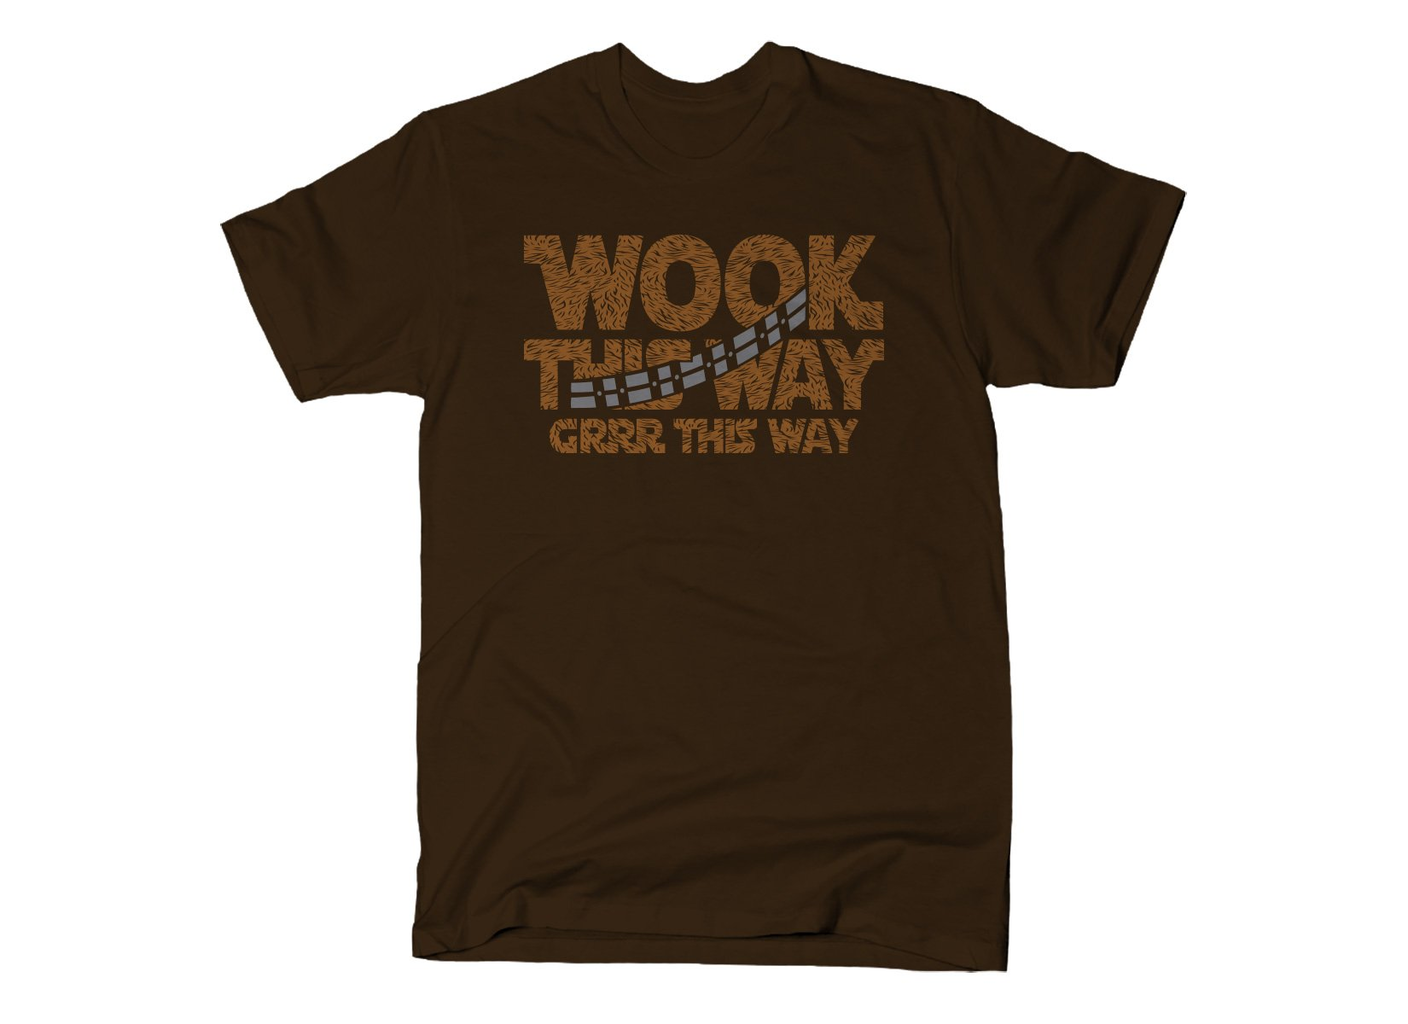 SnorgTees: Wook This Way